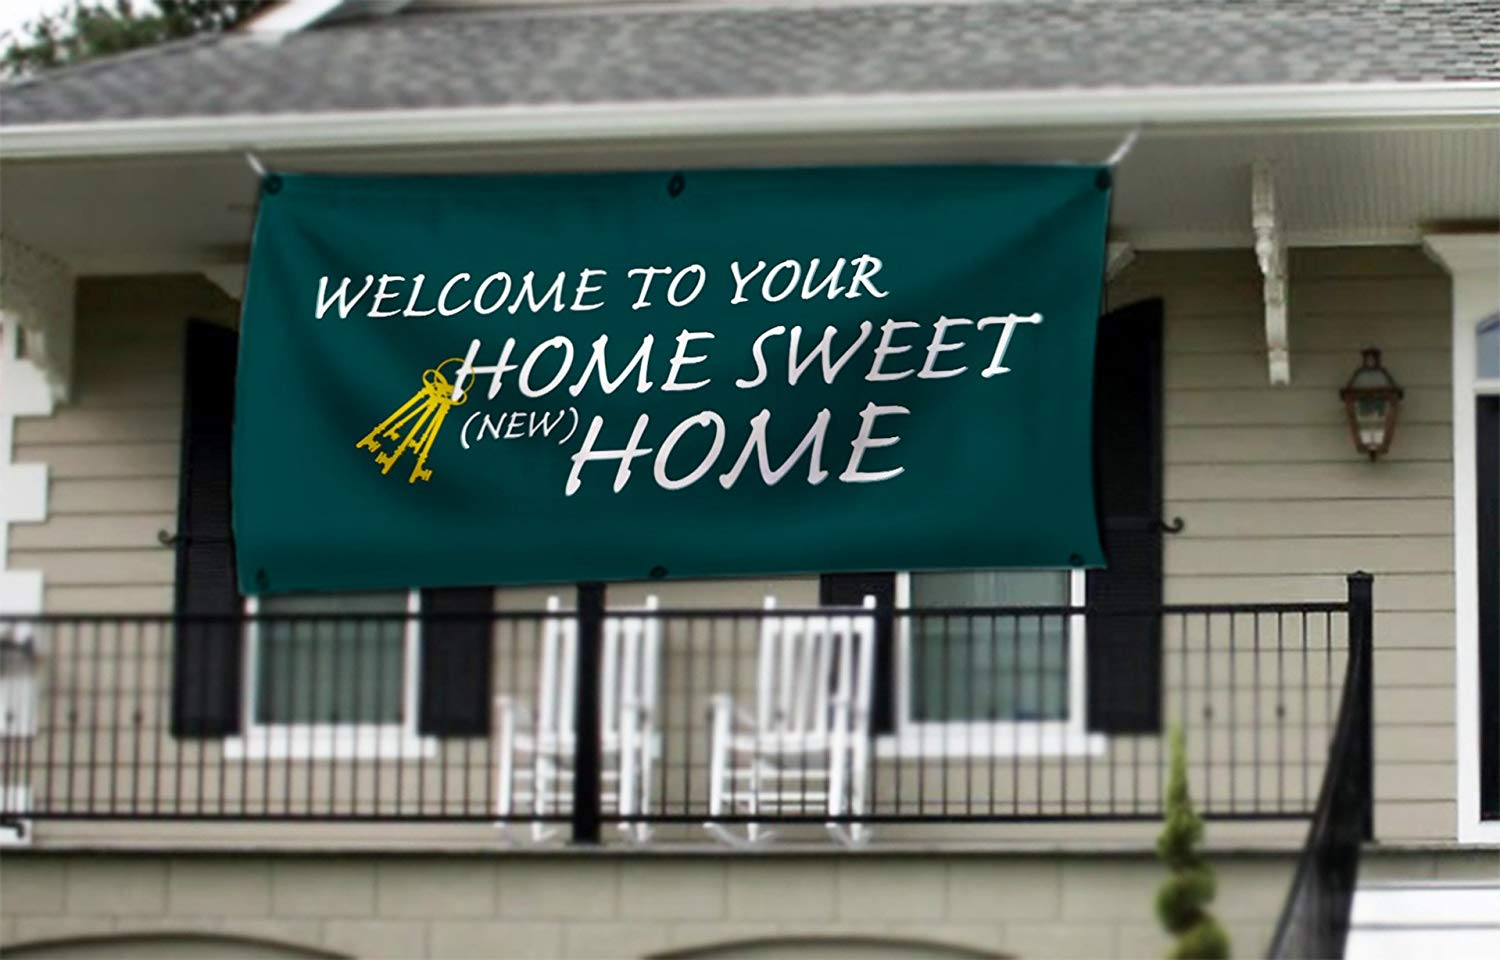 New Home Welcome Home Banner - Home Sweet Home - Housewarming Party Banner - 2' x 4'